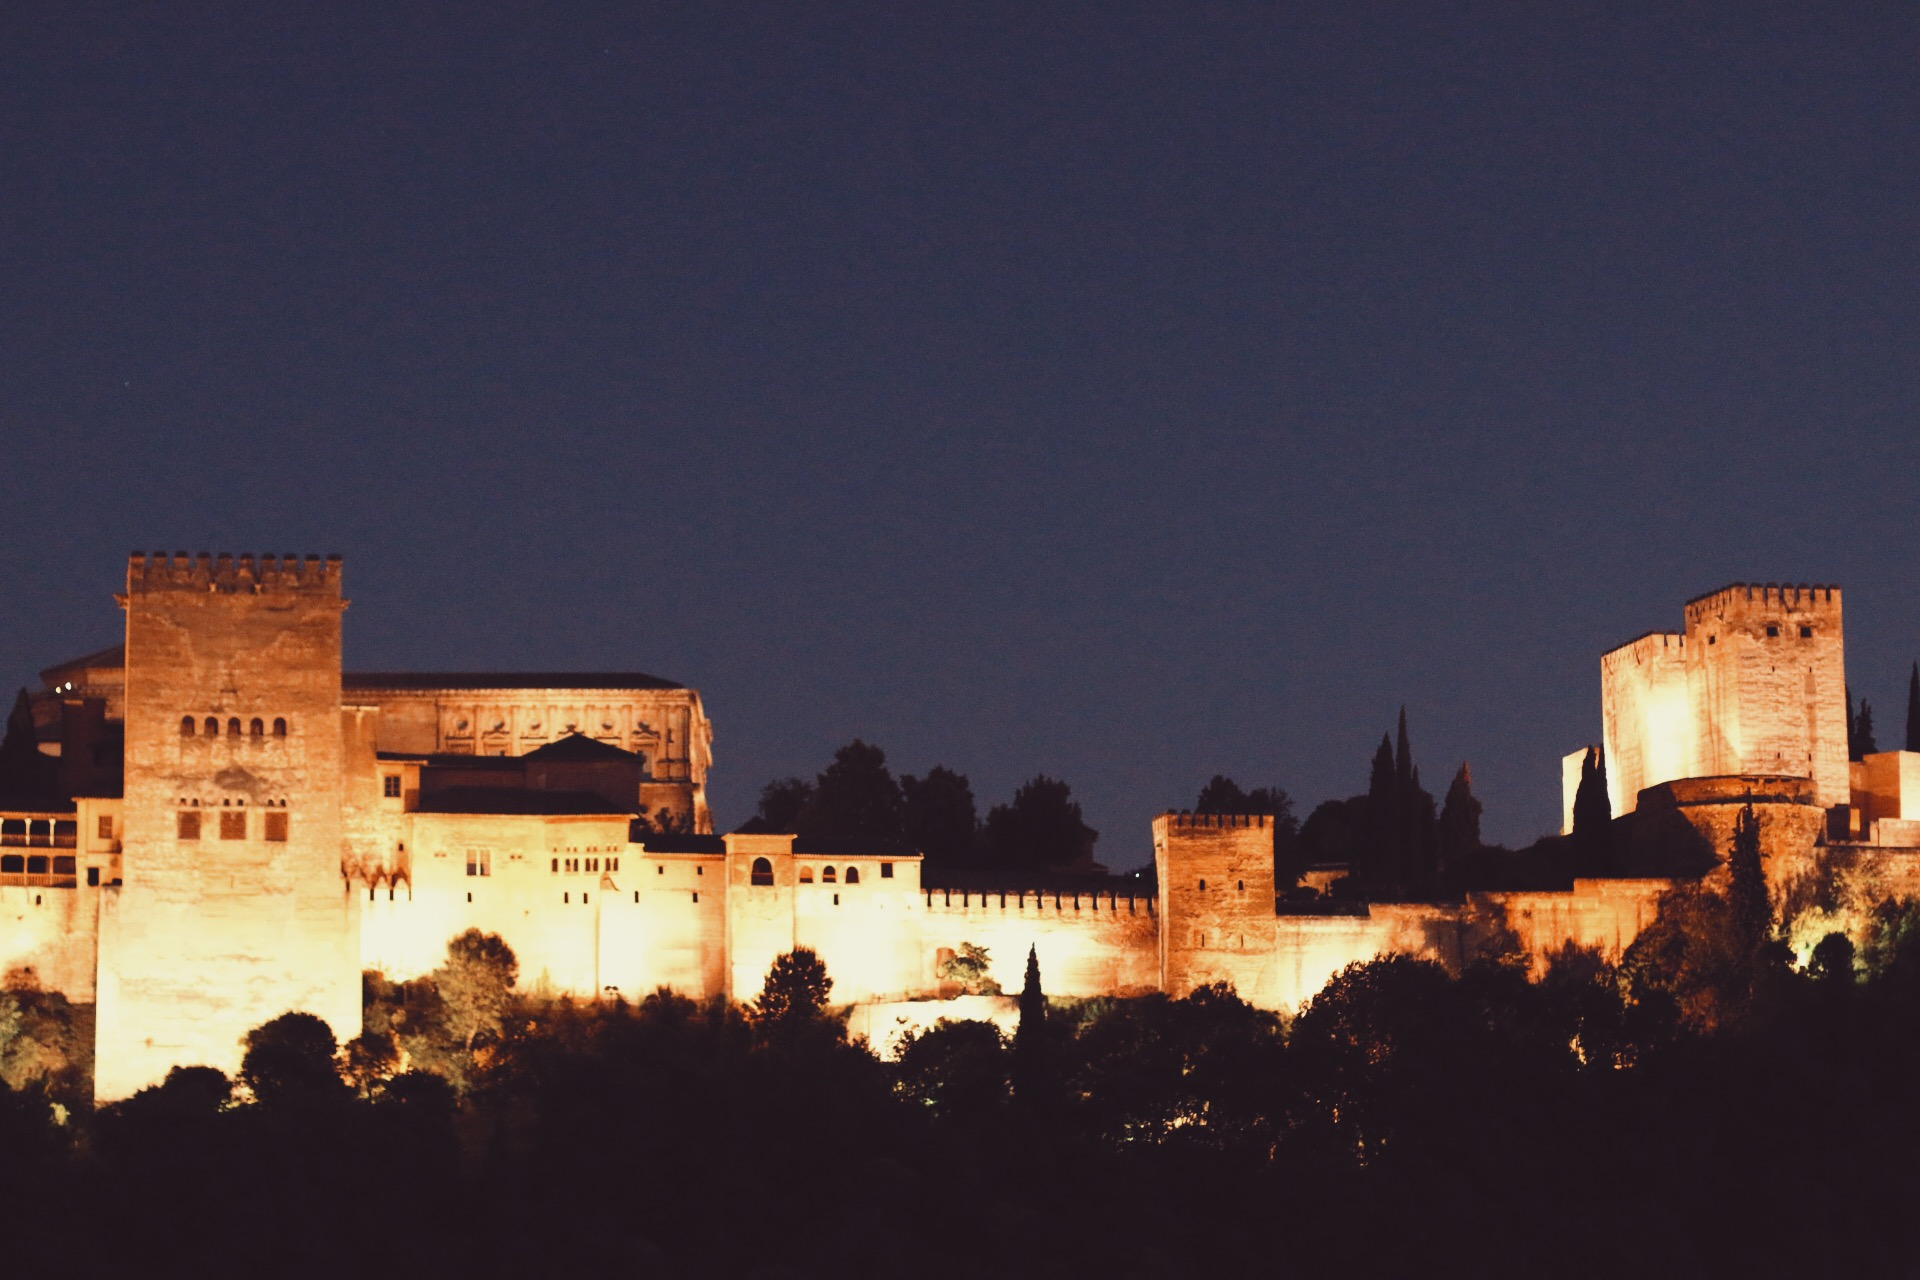 THE ALHAMBRA AFTER SUNDOWN